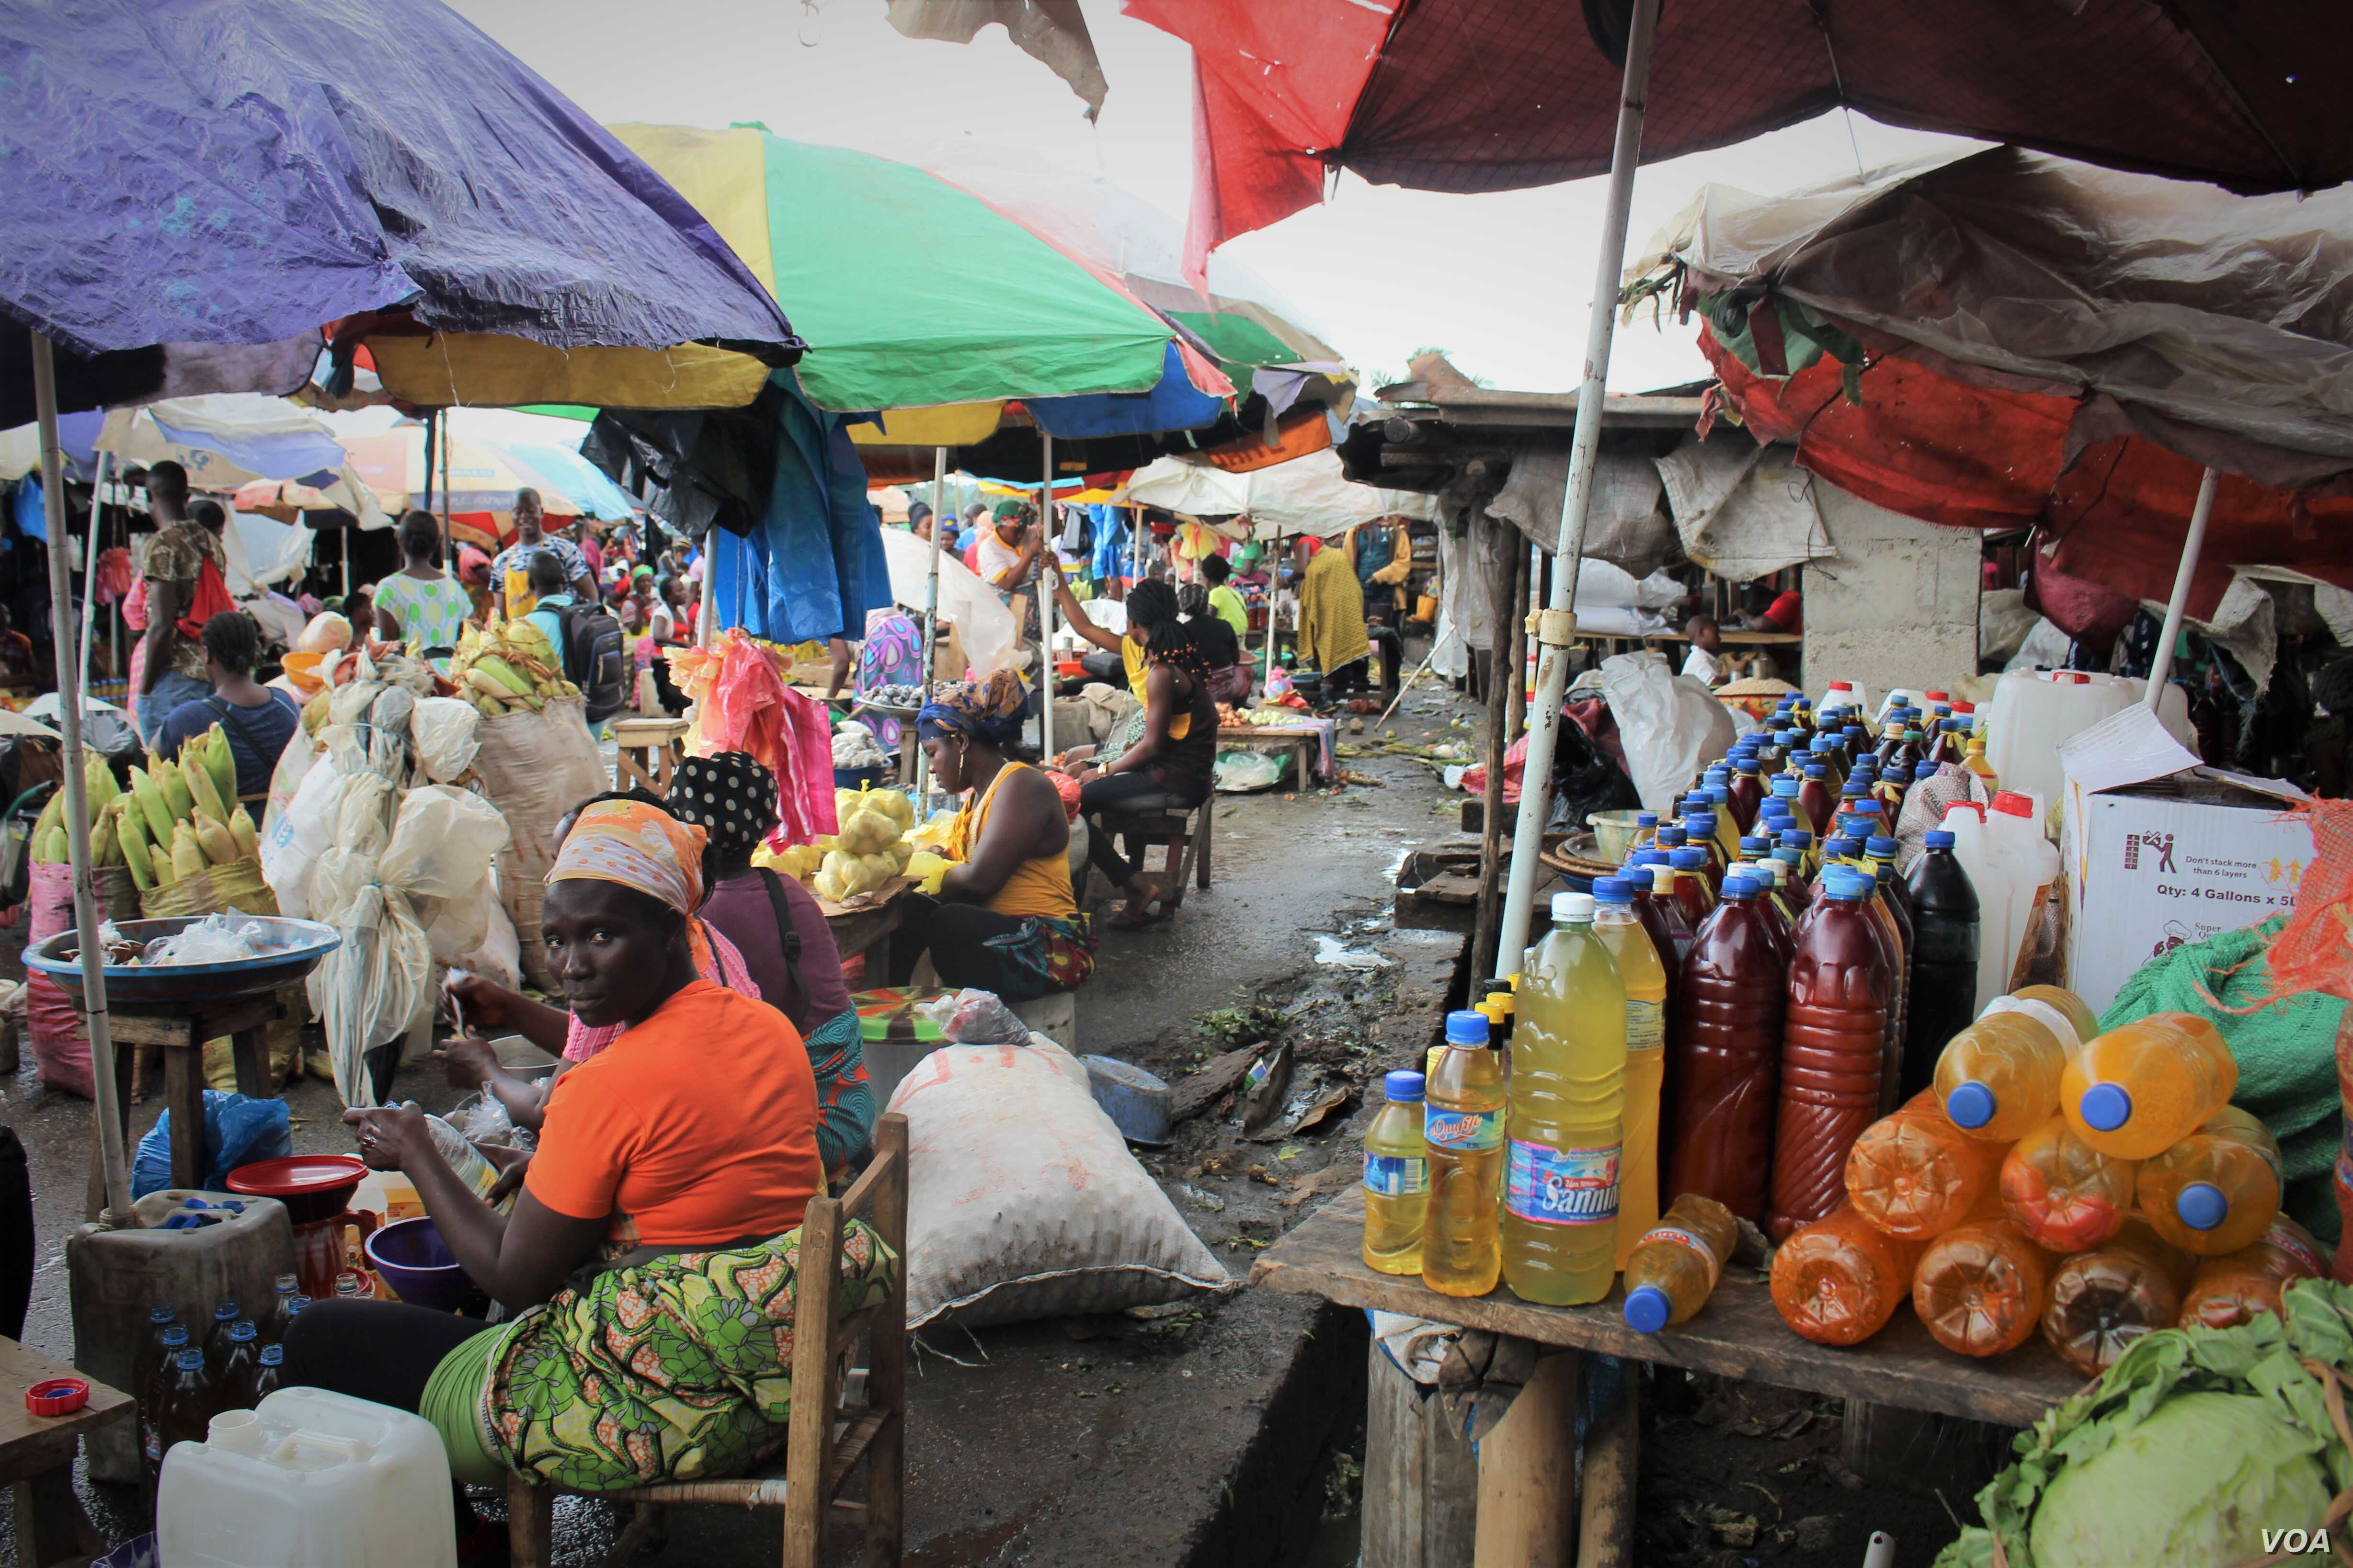 A depreciating Liberian dollar is causing food prices to increase at Monrovia's Gorbachop market. (Lucinda Rouse/VOA)